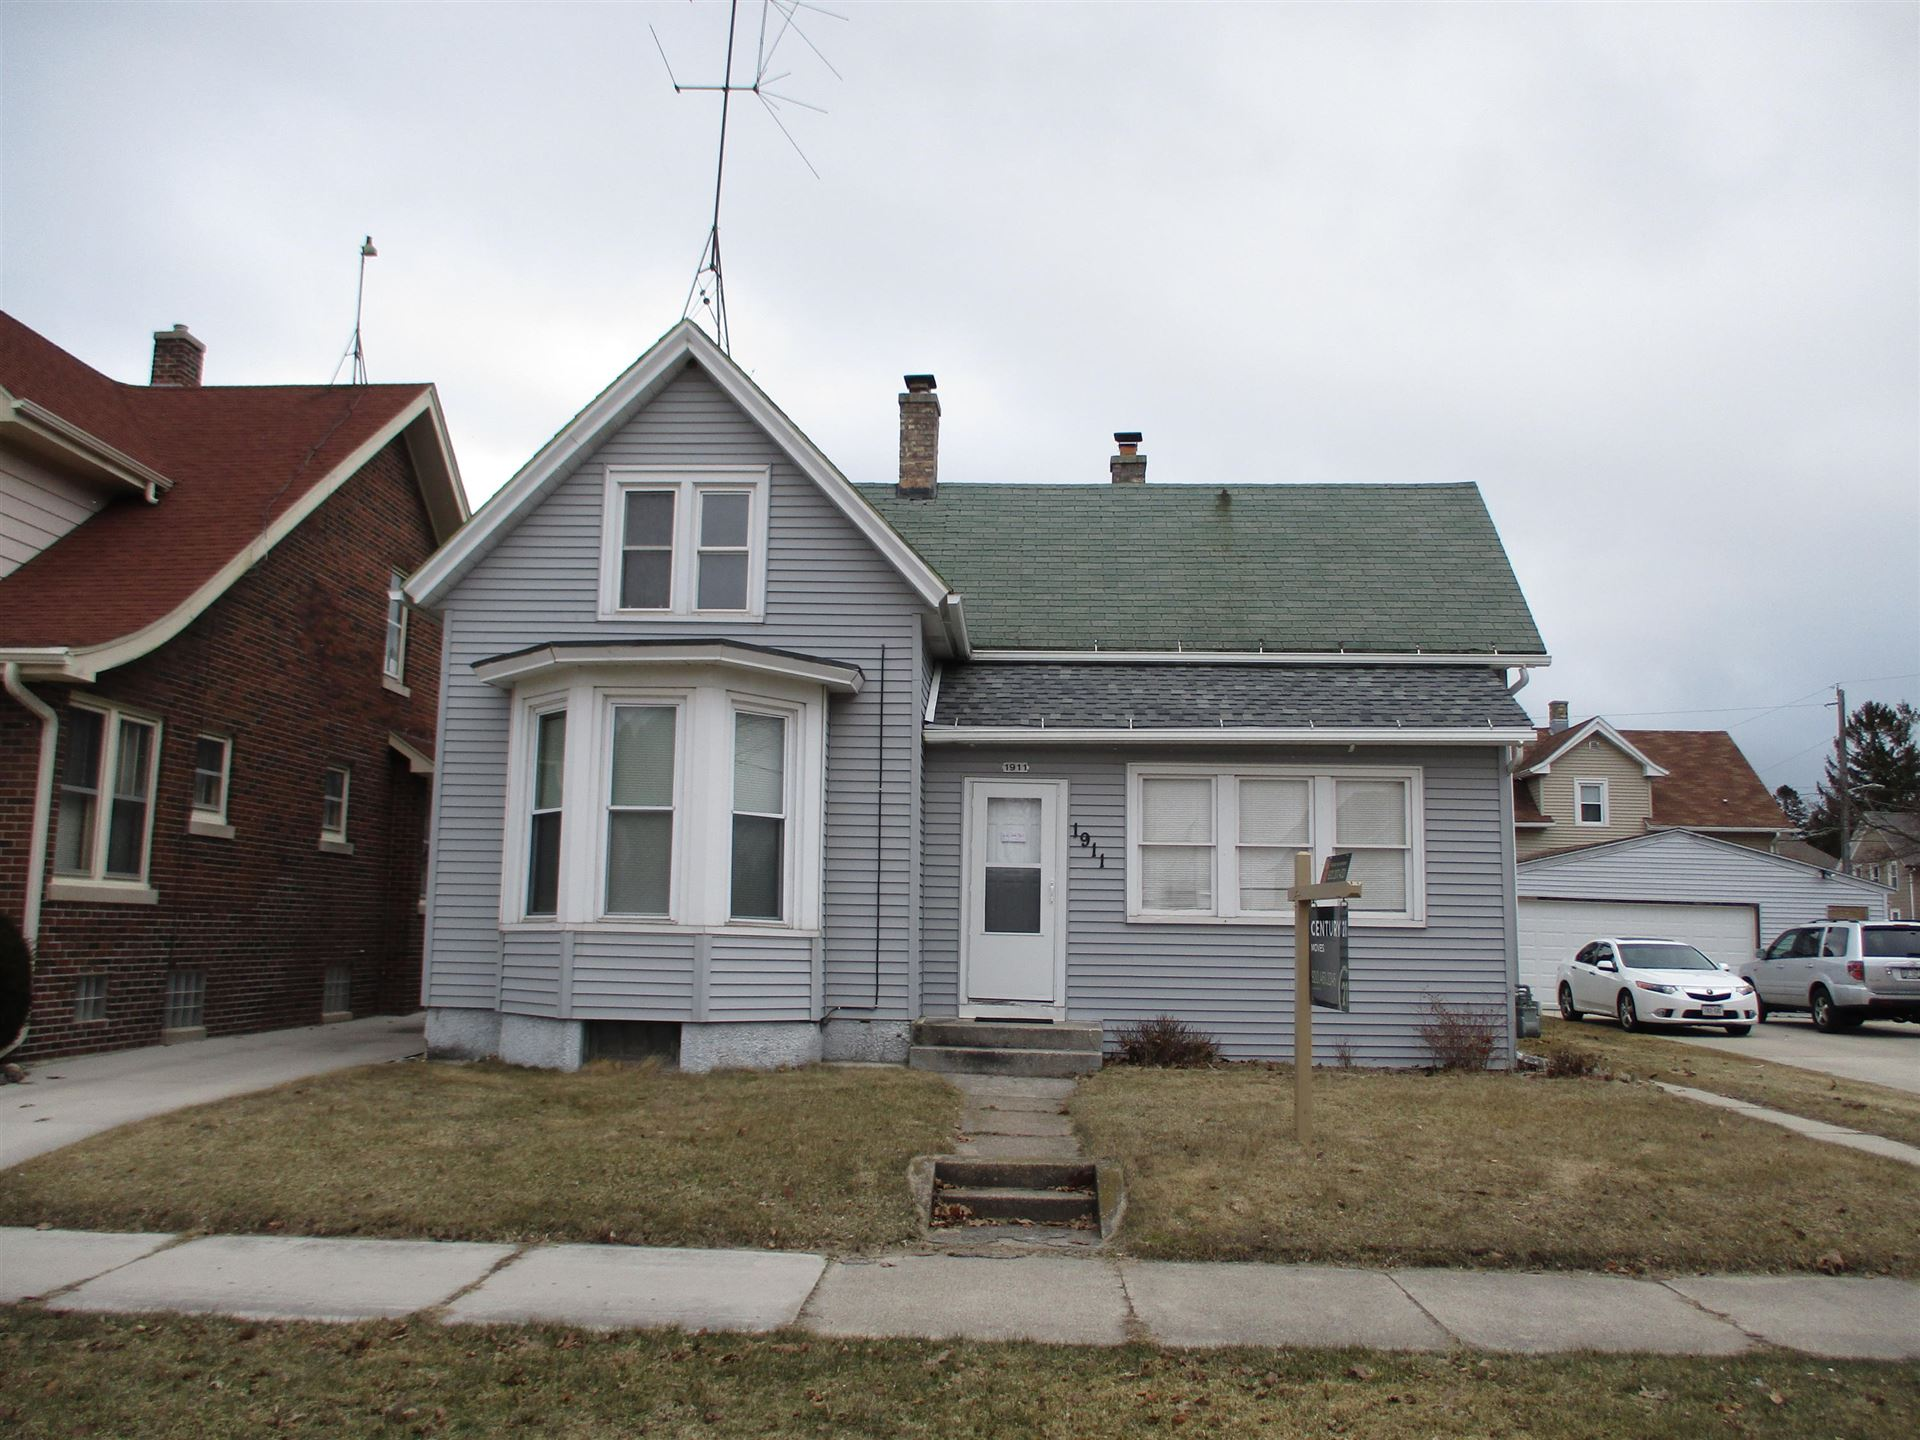 1911 N 10th ST #1911-A, Sheboygan, WI 53081 - #: 1679978